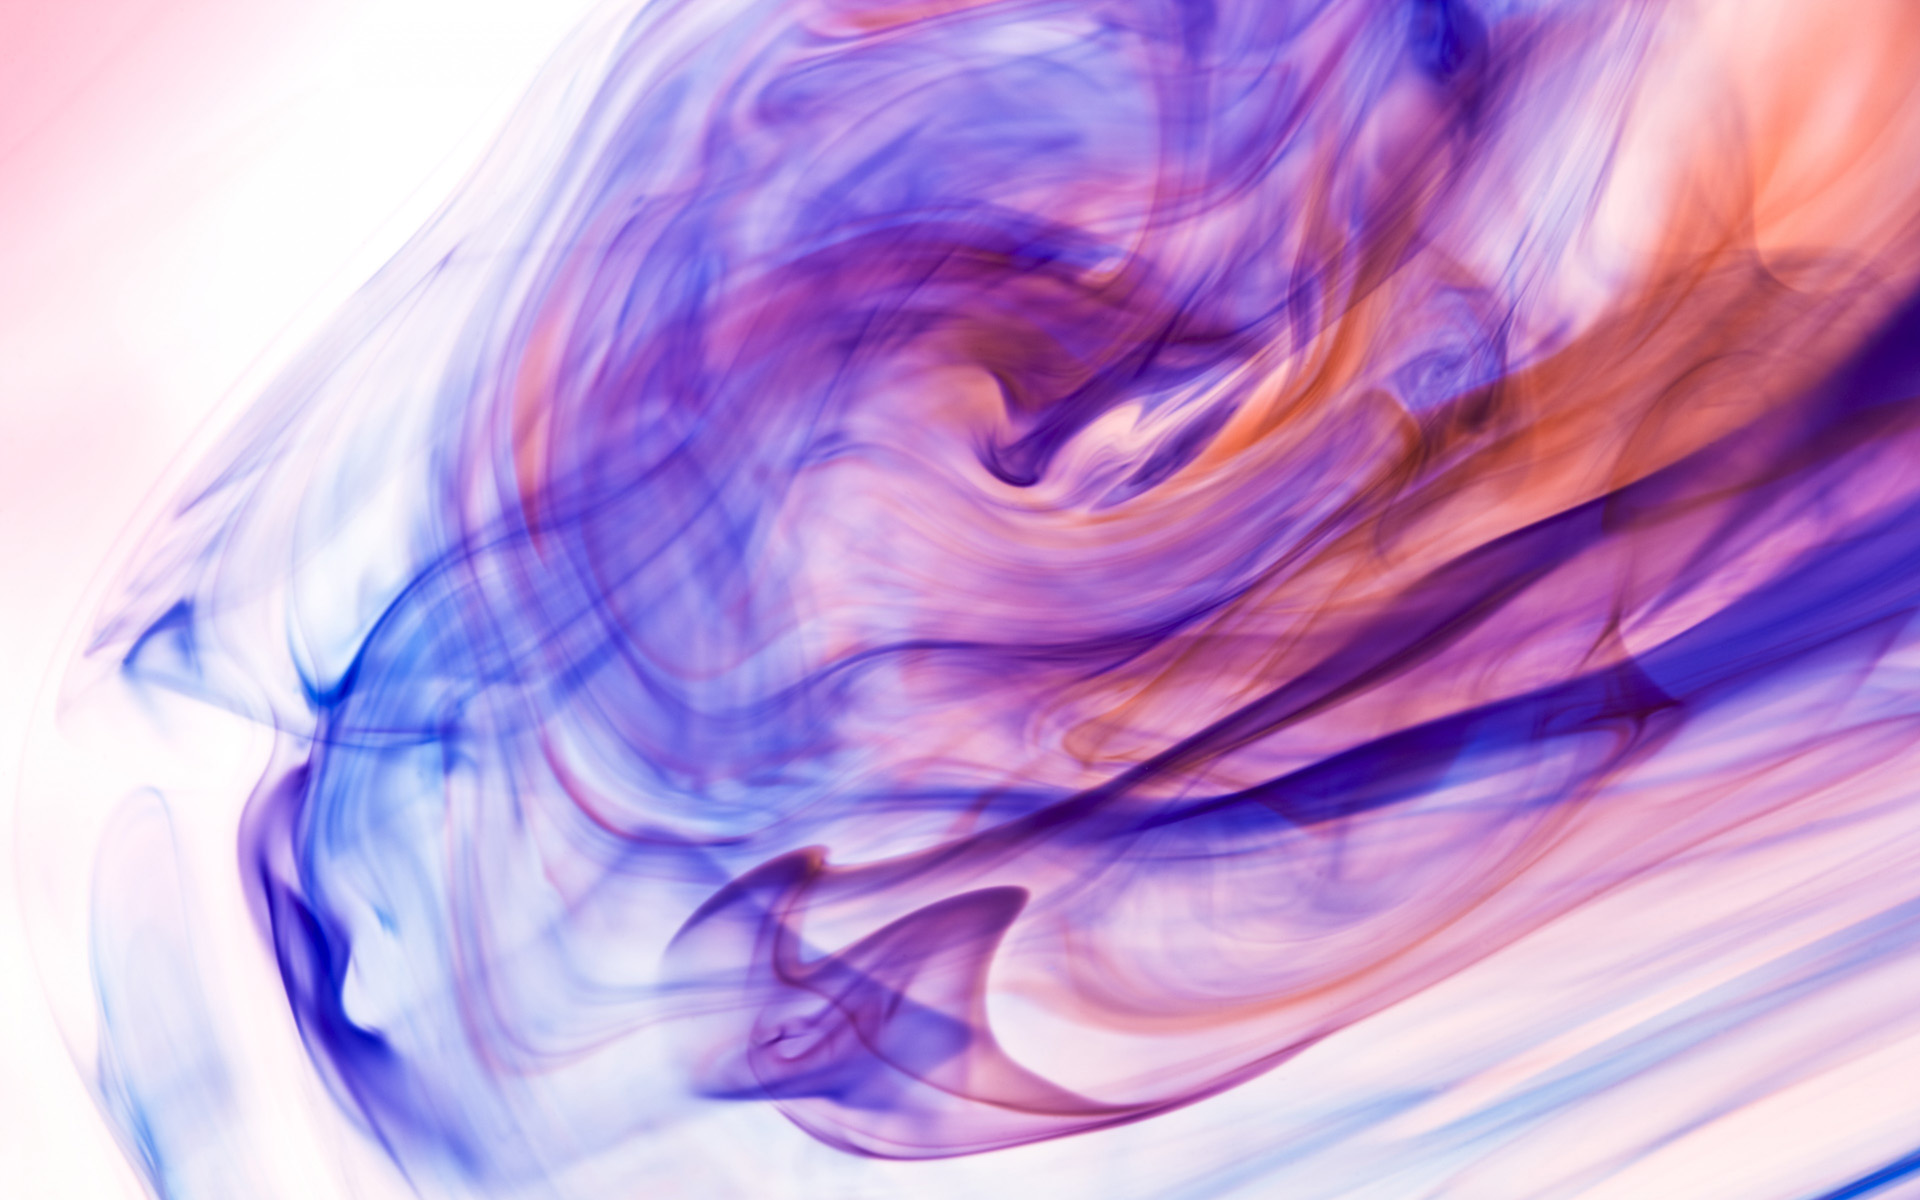 Abstract Water Painting Colors Samsung Galaxy S5 Hd: Wallpaper Ink In Water